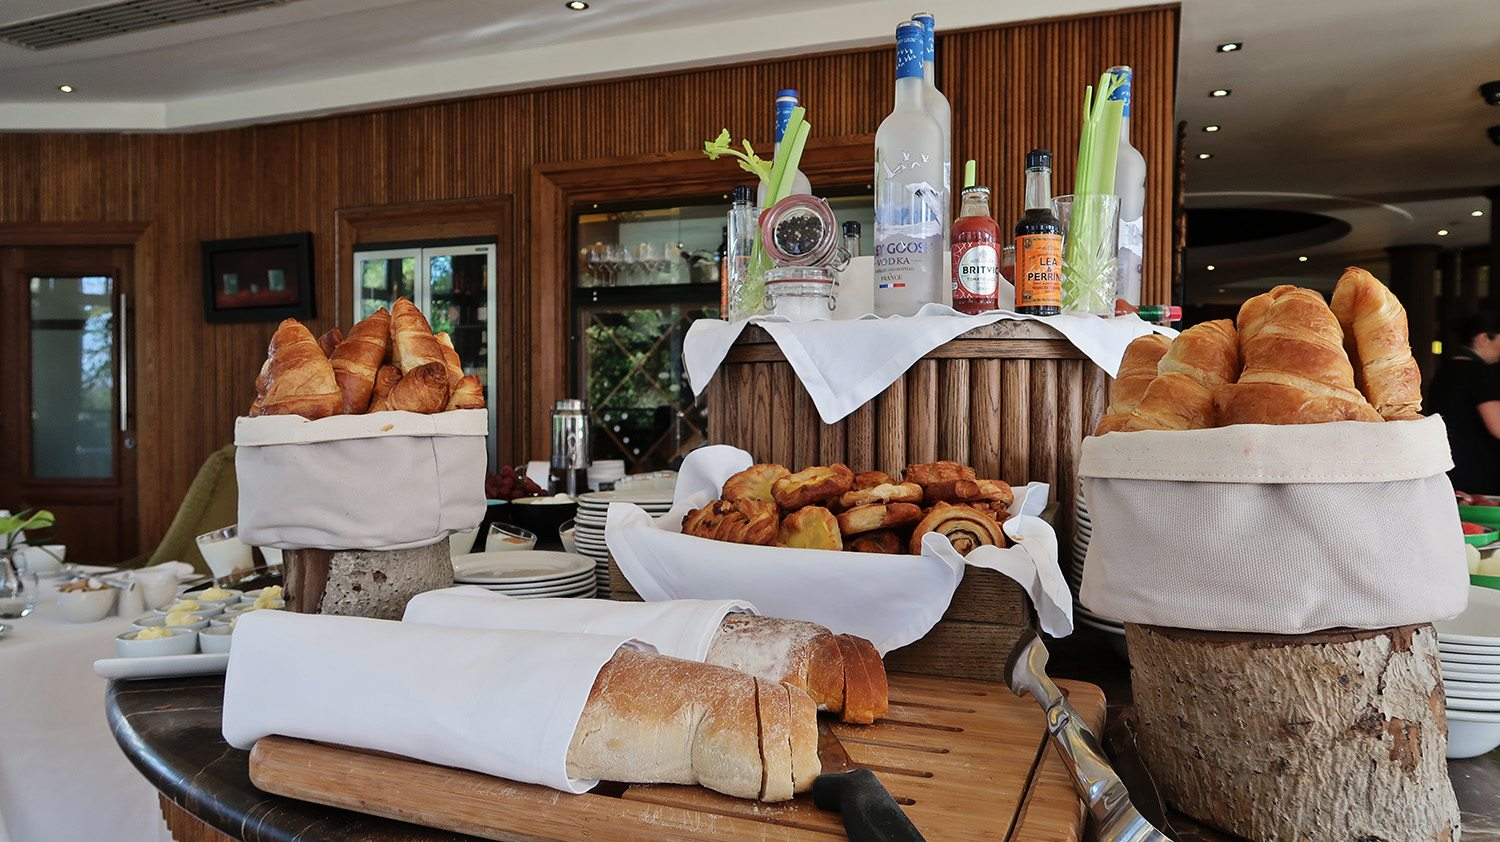 Baskets of bread laid out on the buffet table